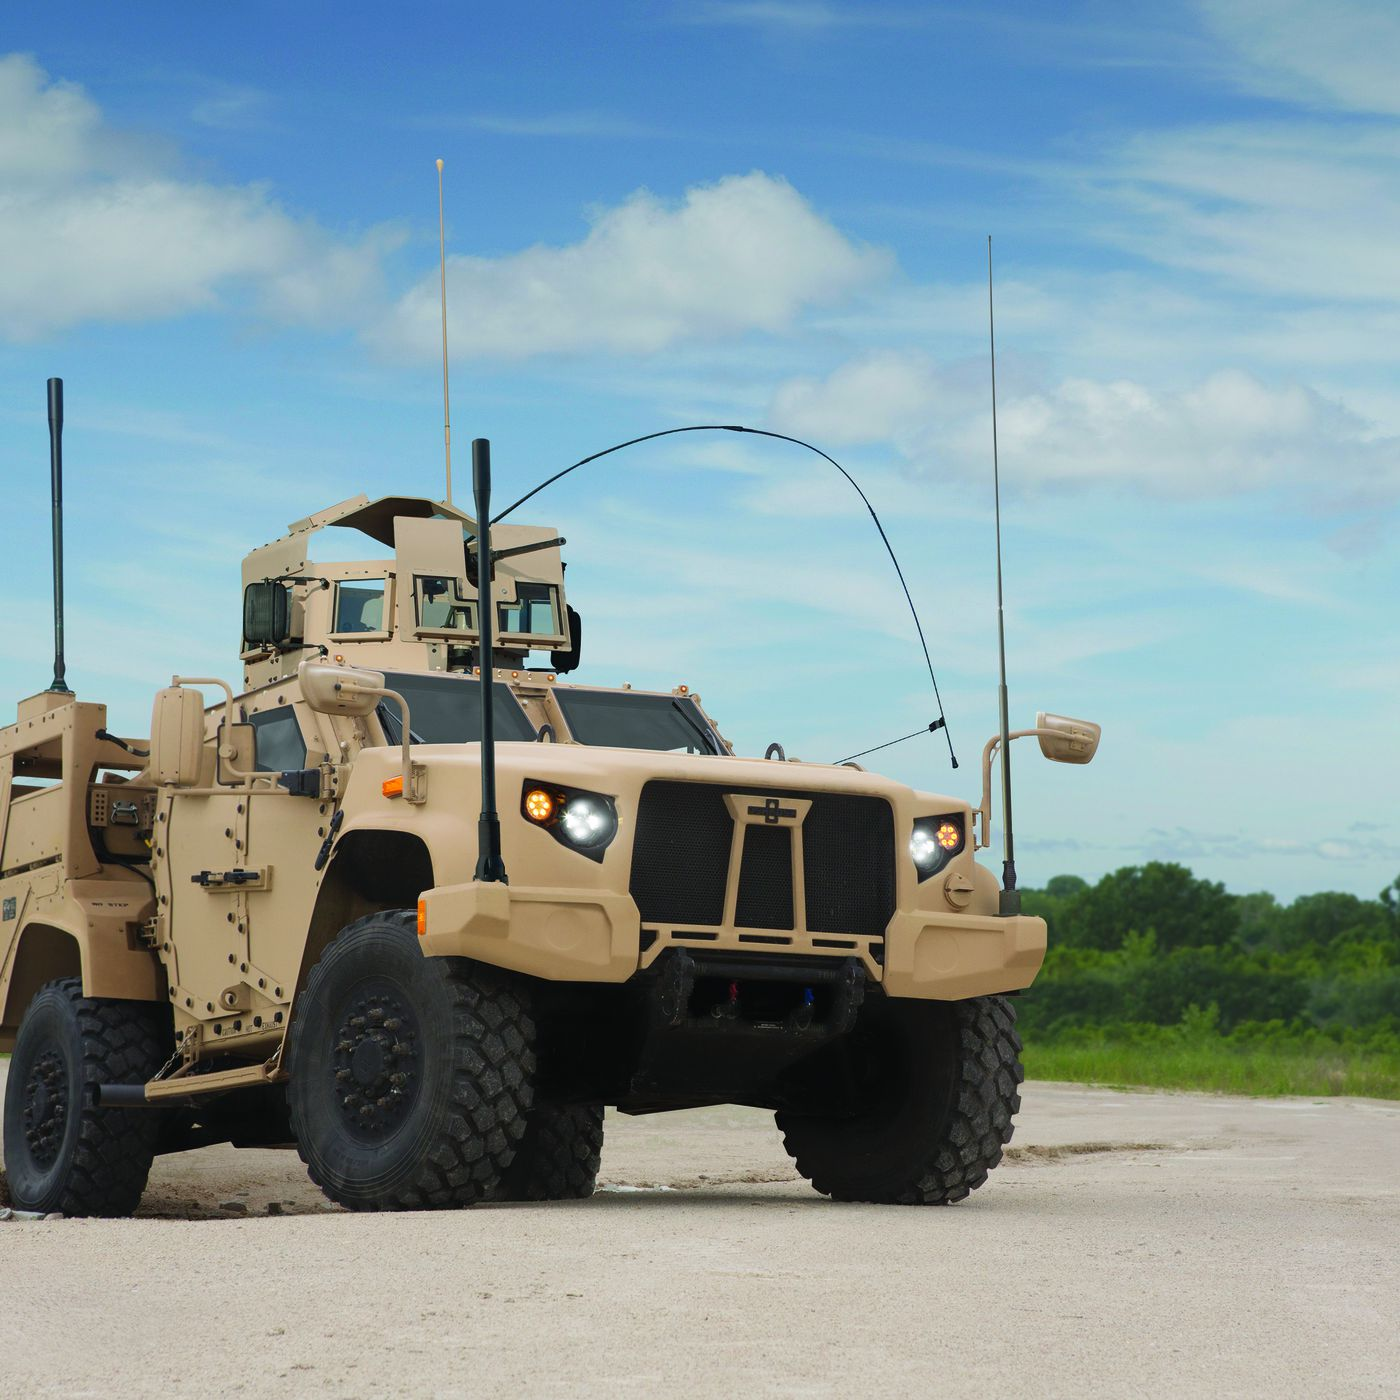 Here is the badass truck replacing the US military's aging